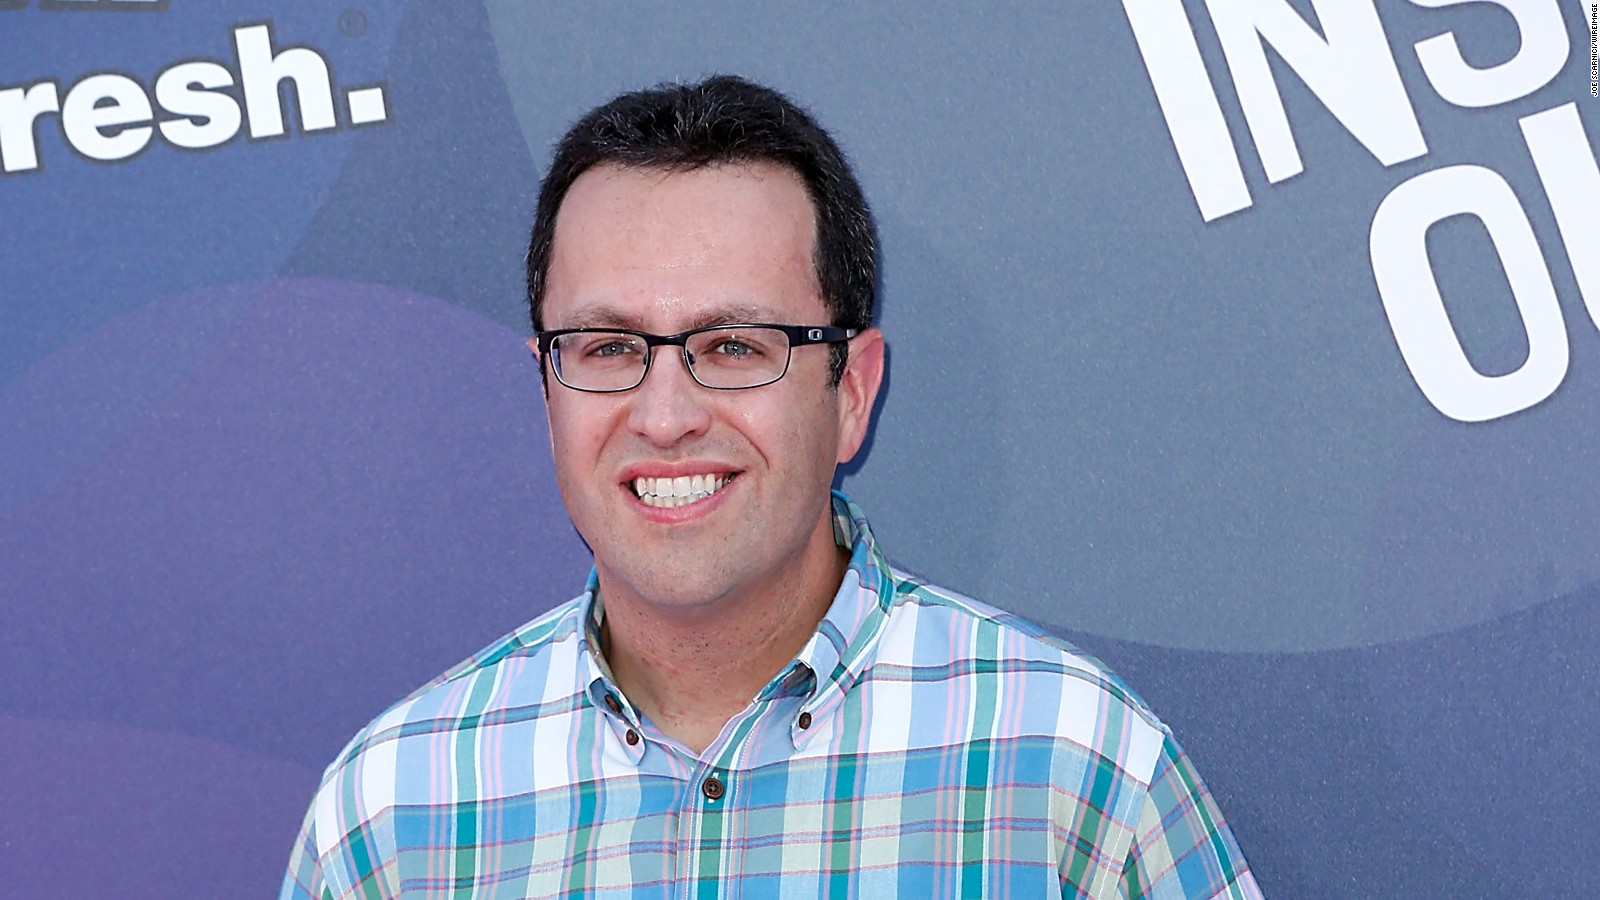 Jared Fogle's home raid: What does it mean? (Opinion) - CNN